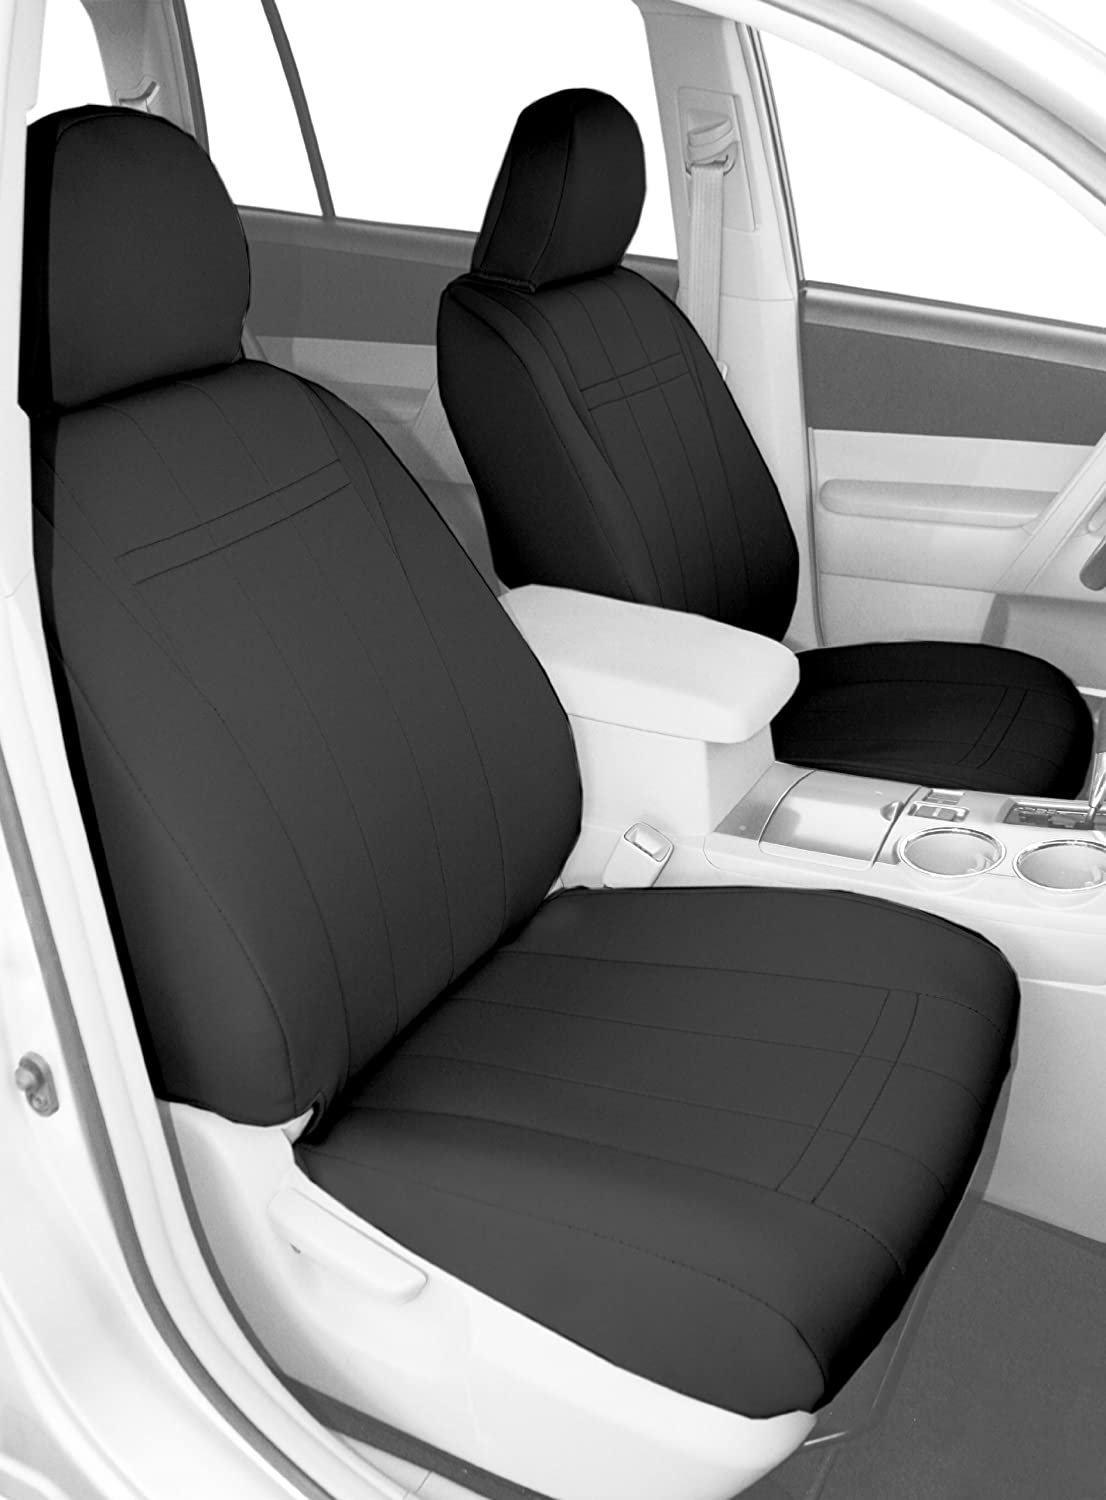 CalTrend Front Row Bucket Custom Fit Seat Cover for Select Nissan Xterra Models NeoSupreme Charcoal Insert and Trim